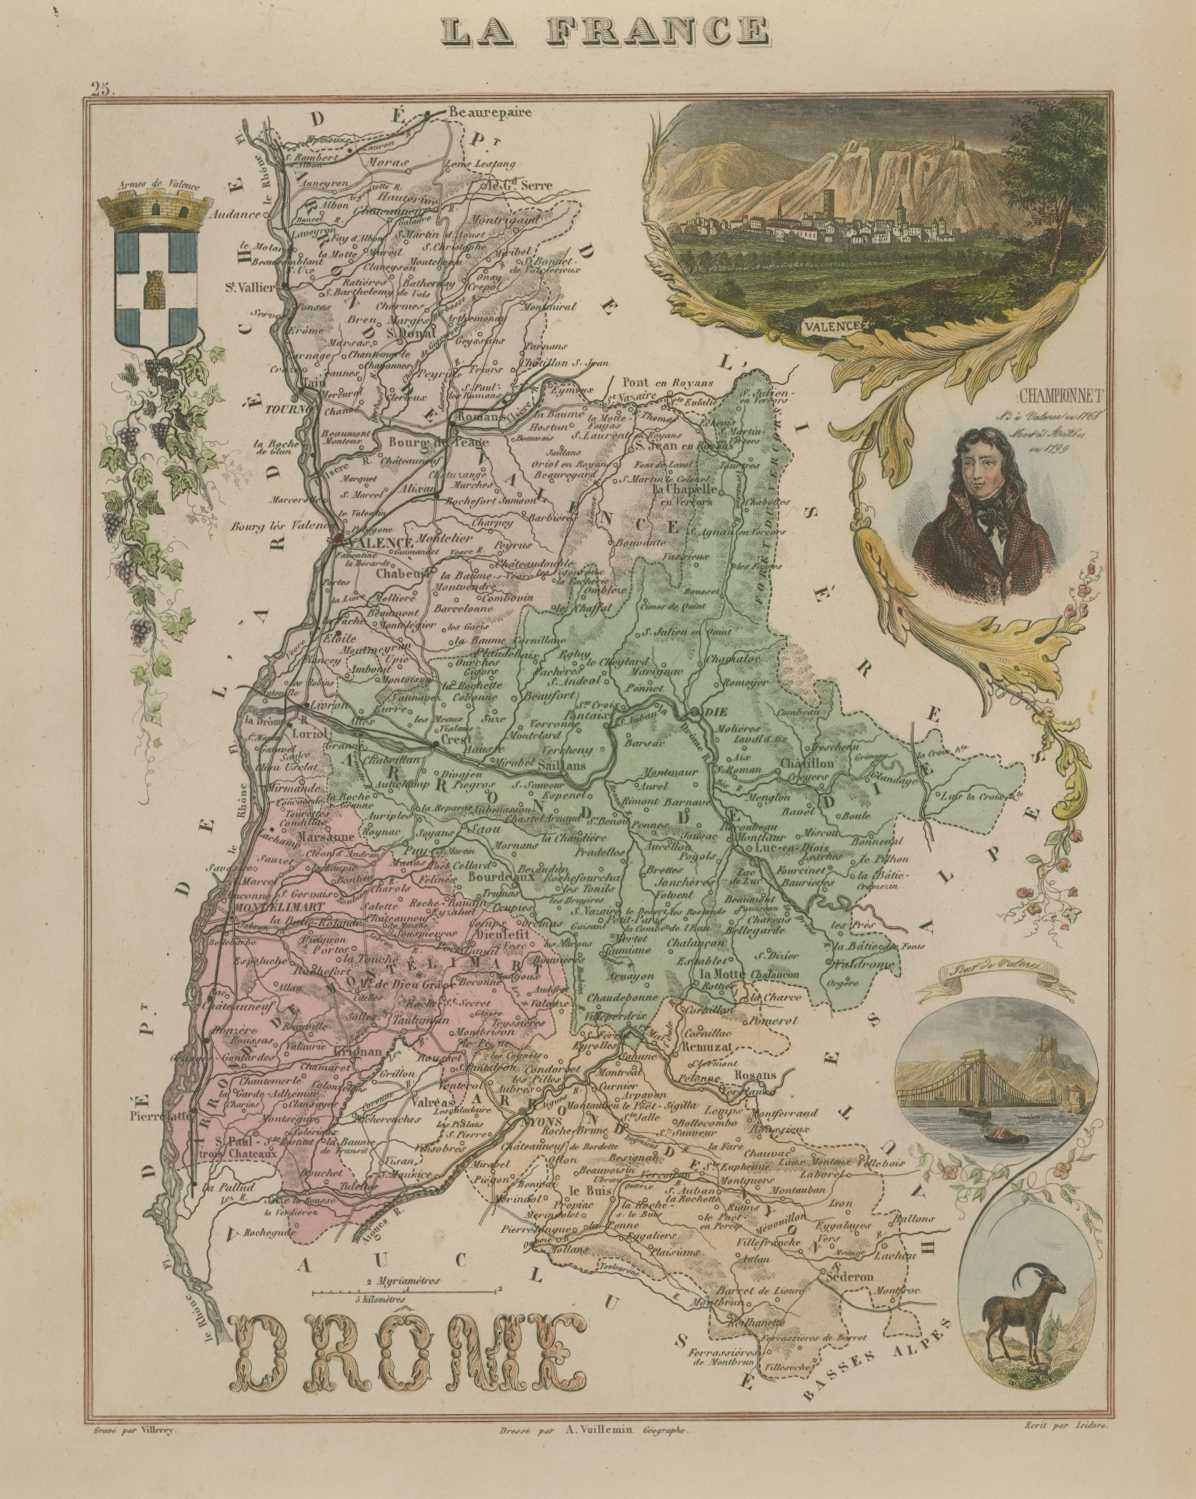 Drome French Department antique map by Vuillemin c1875